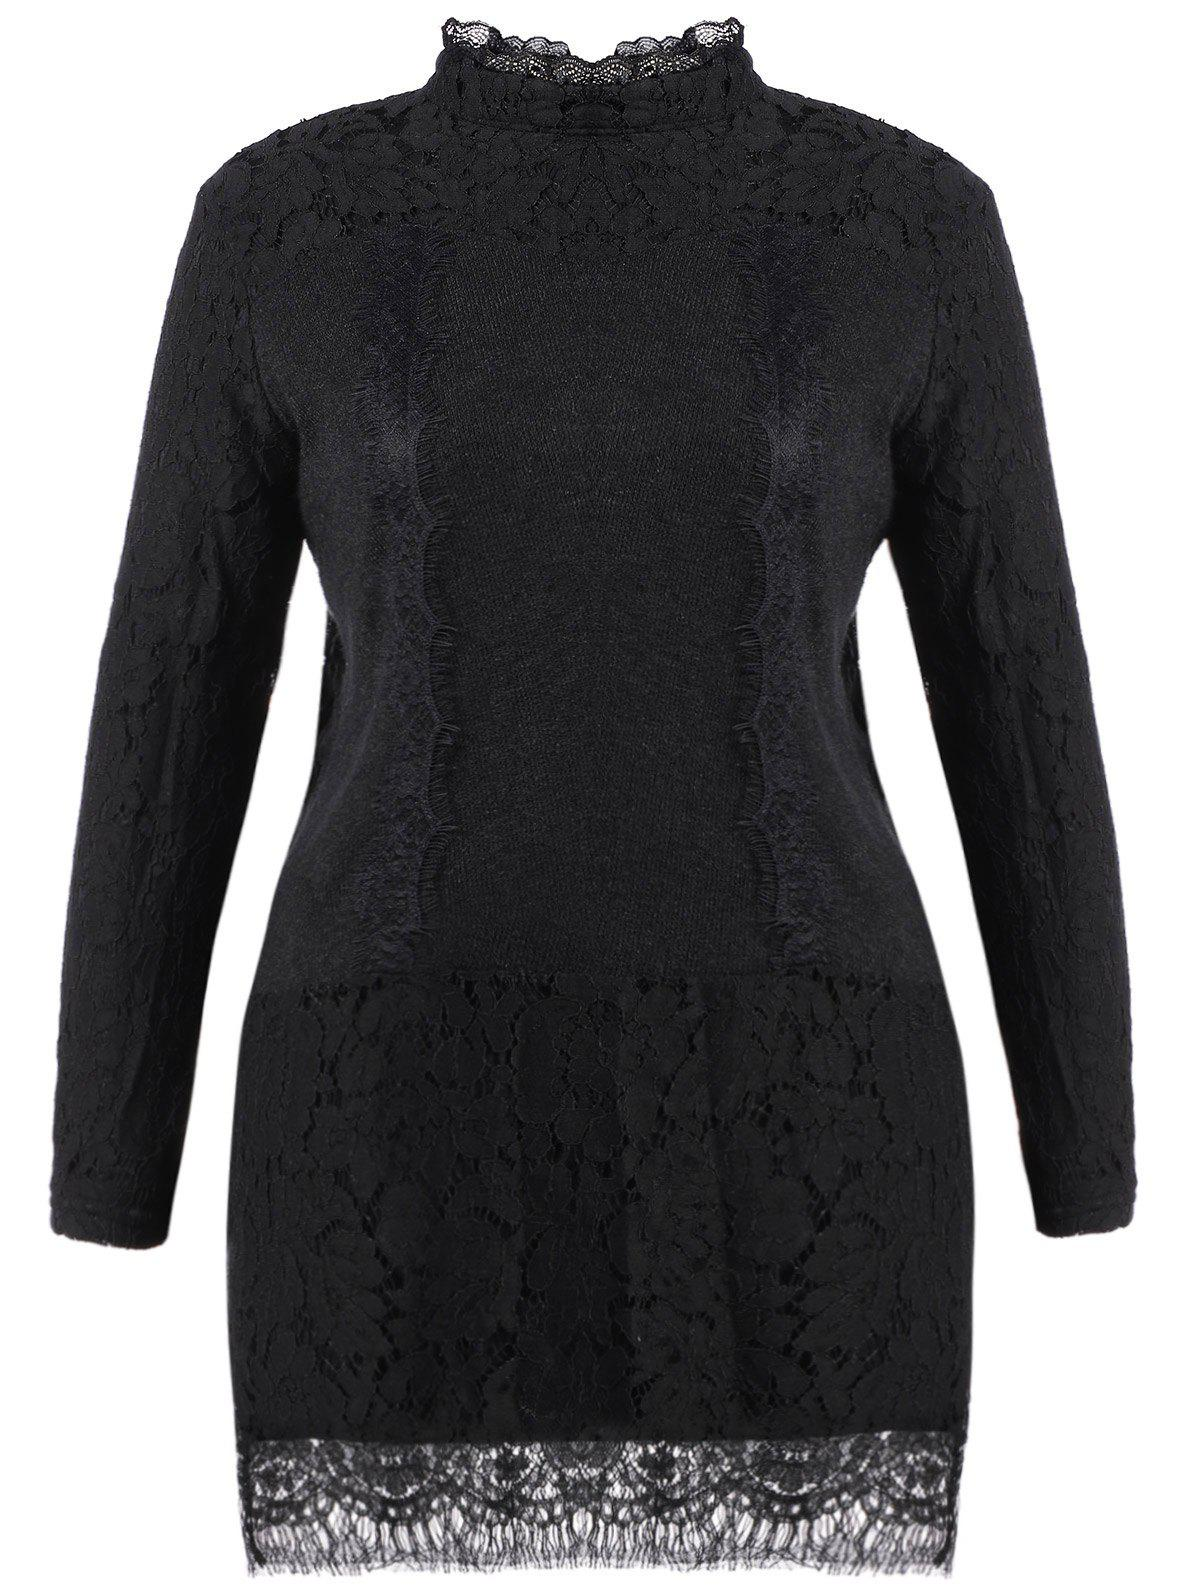 Plus Size Stand Collar Lace Mini Dress - BLACK XL